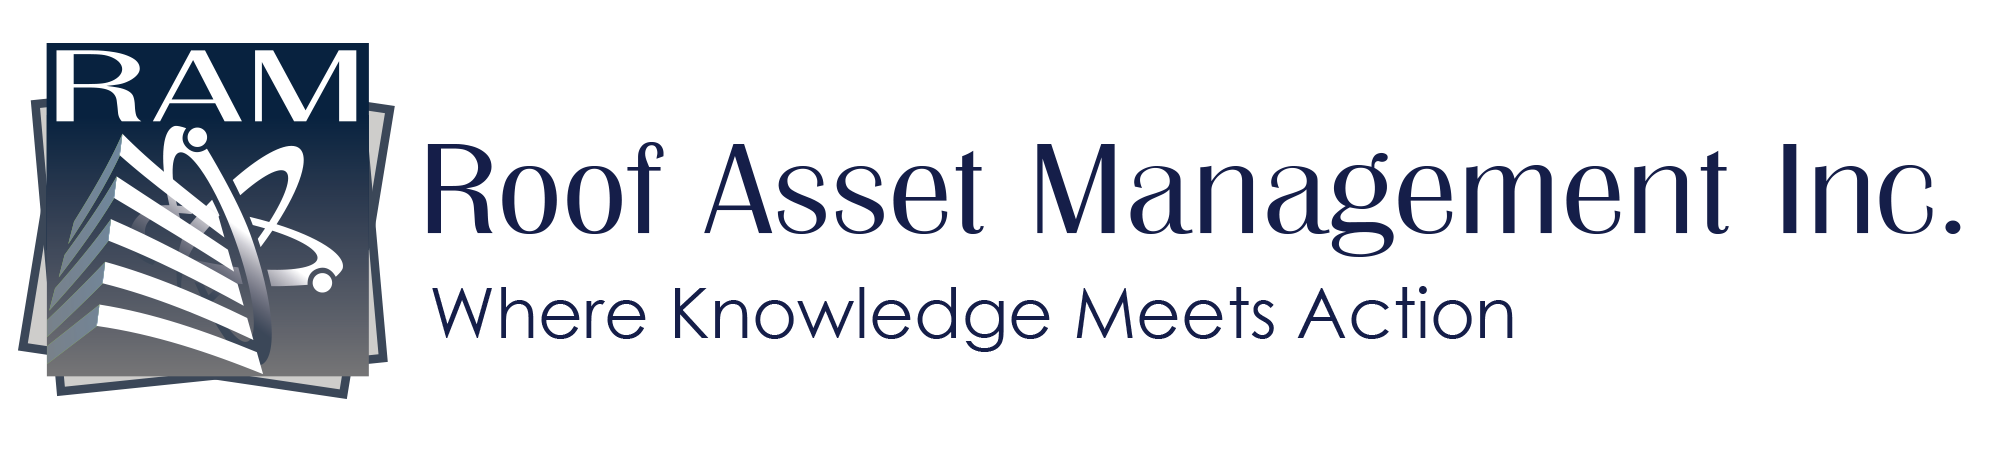 Roof Asset Management Inc. – Roof Assessment and Consulting Services